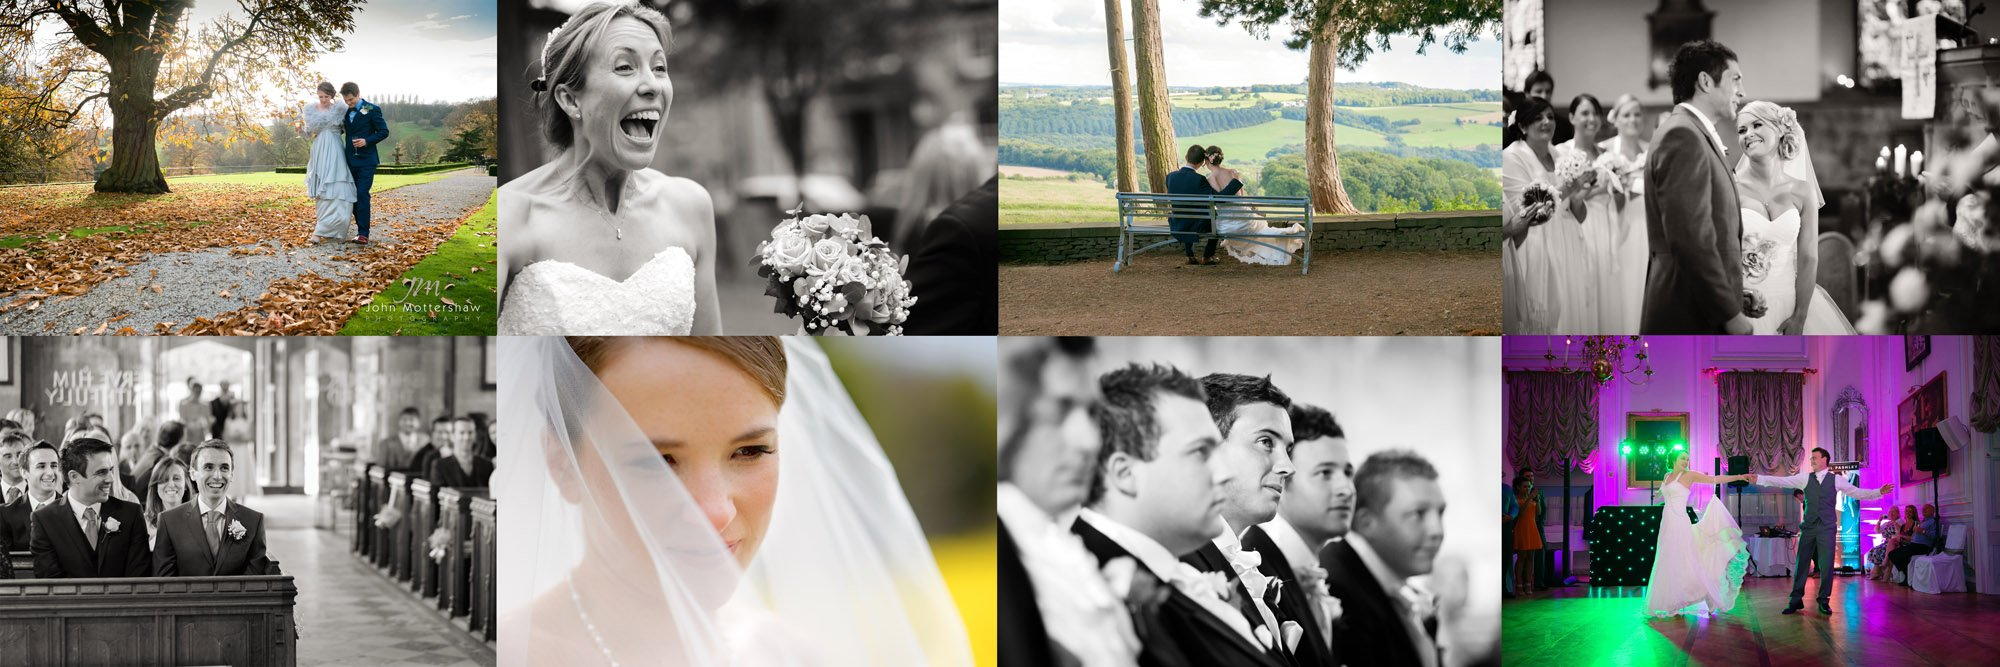 Wedding photography in Sheffield, including Hassop Hall, Losehill House and other Sheffield venues